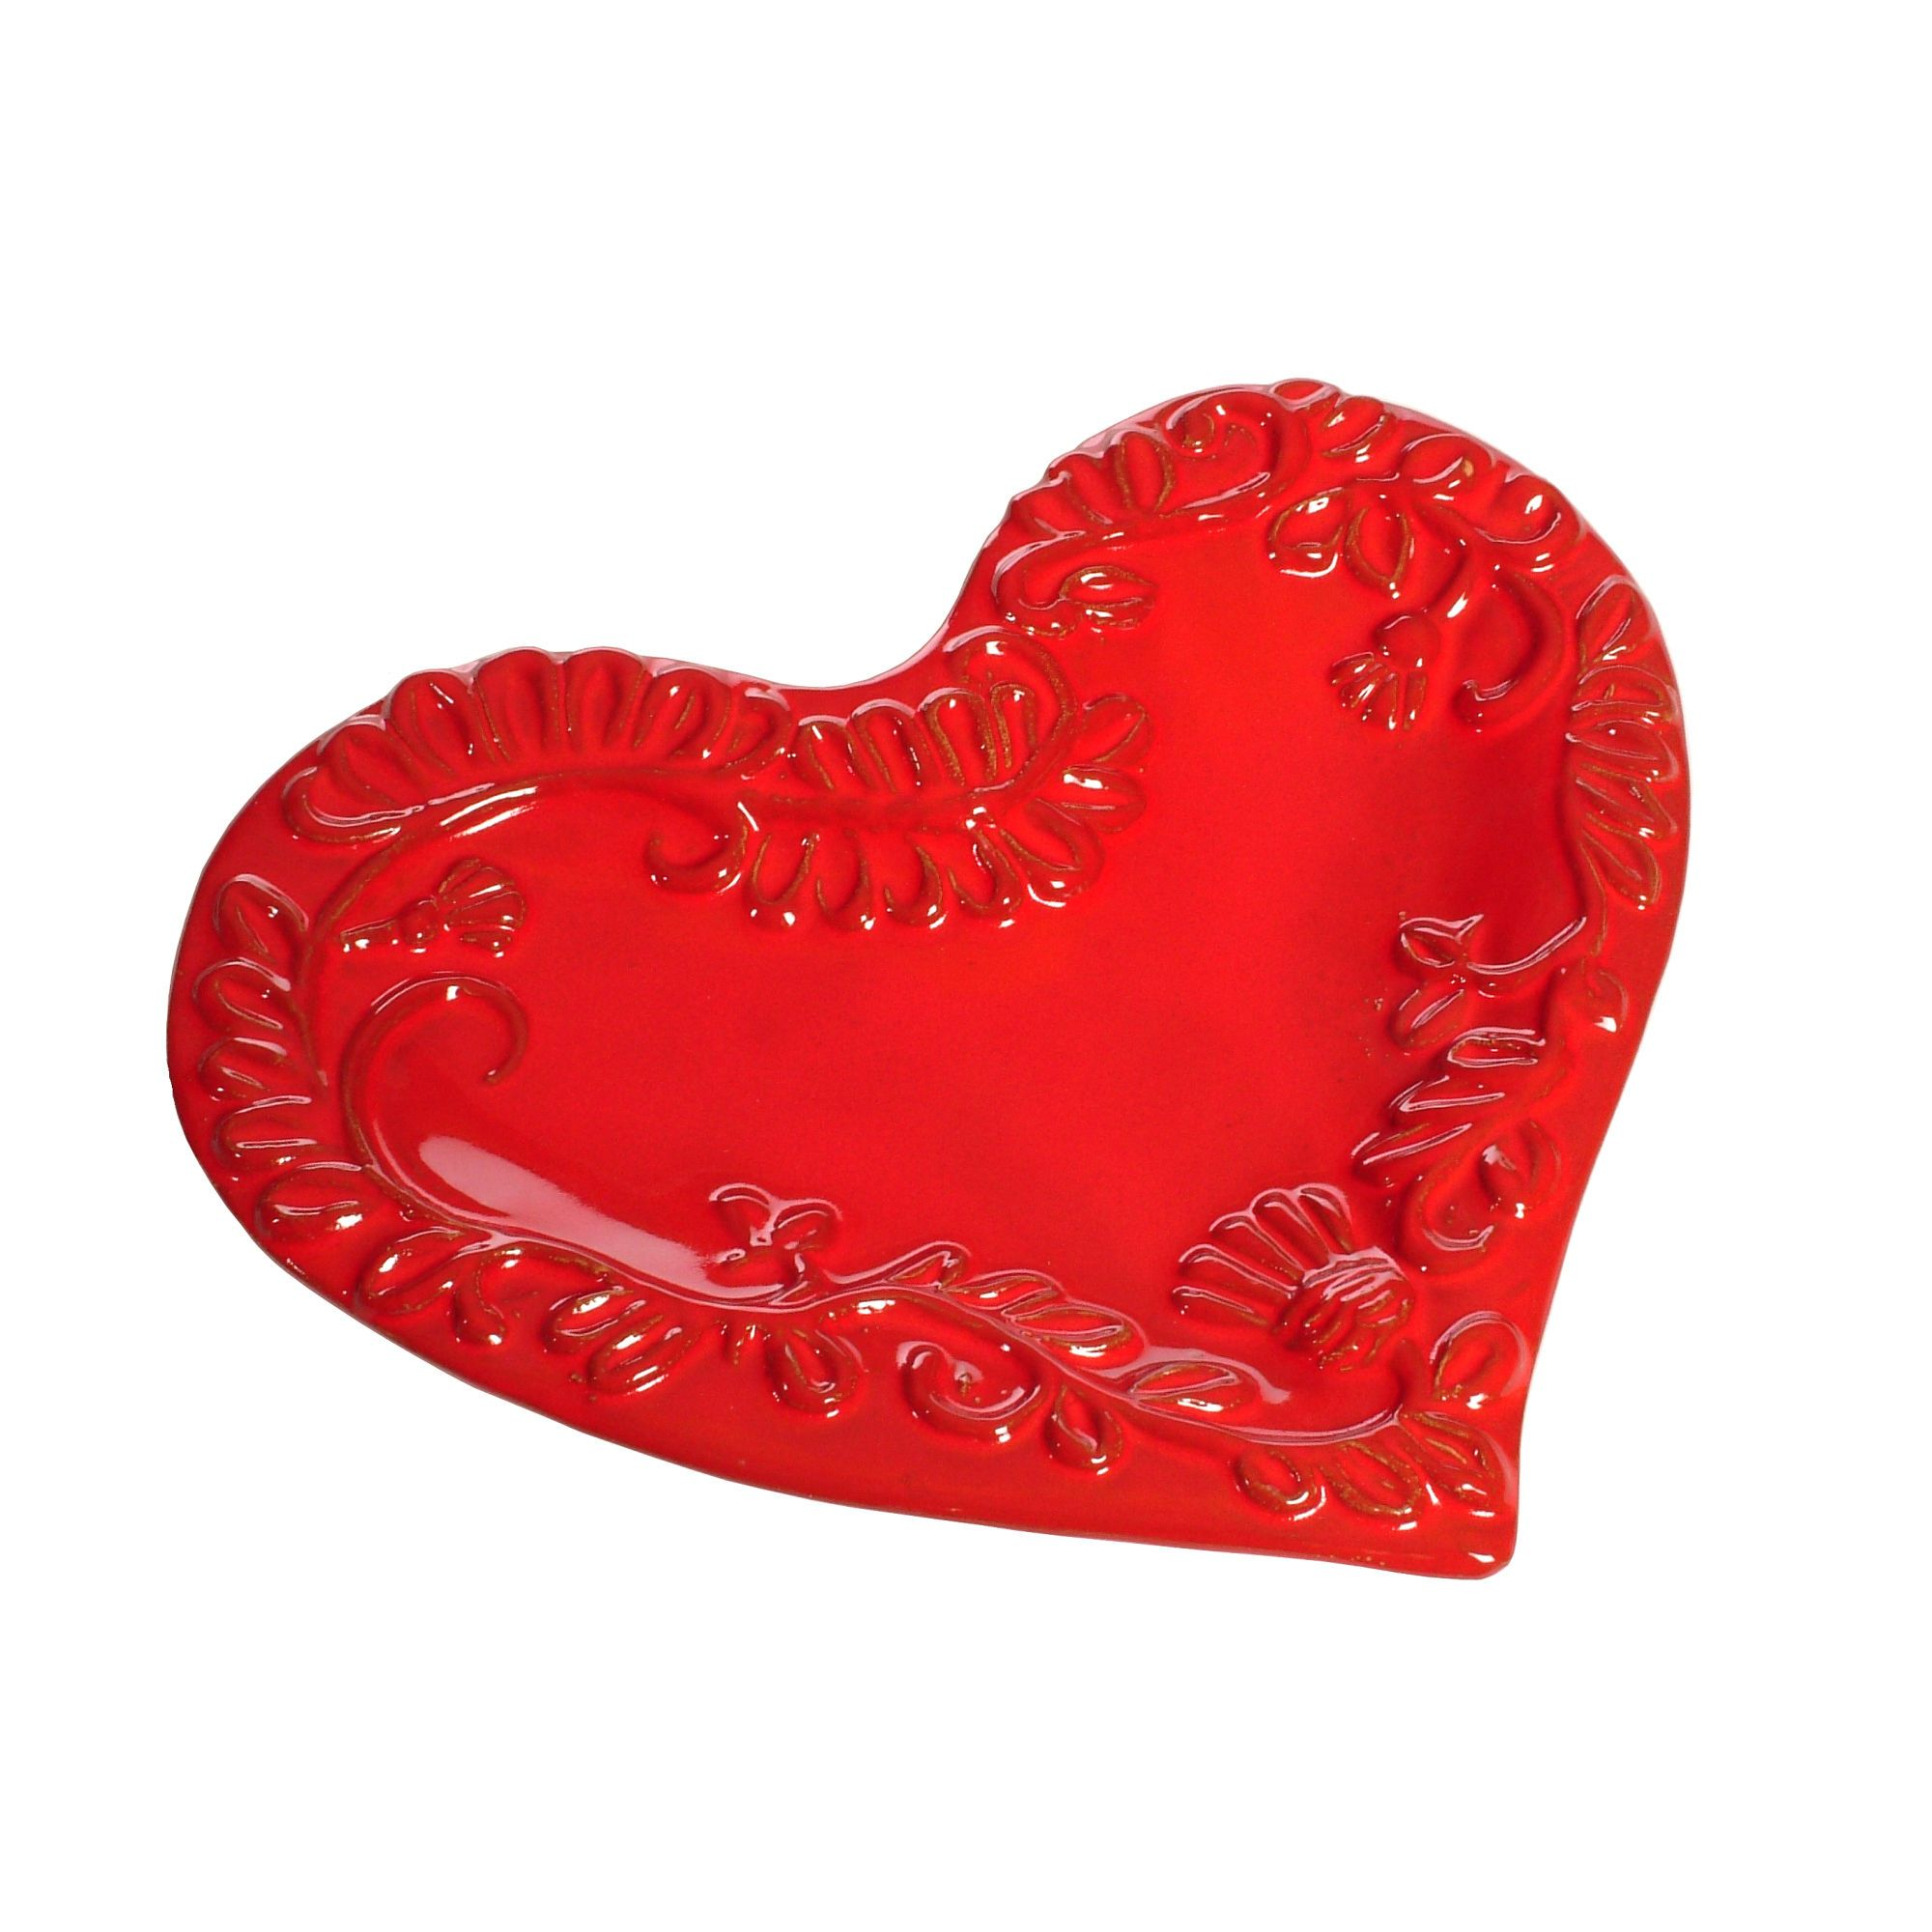 A red and heart shaped plate? Perfect for serving )  sc 1 st  Pinterest & A red and heart shaped plate? Perfect for serving :) | Hearts ...